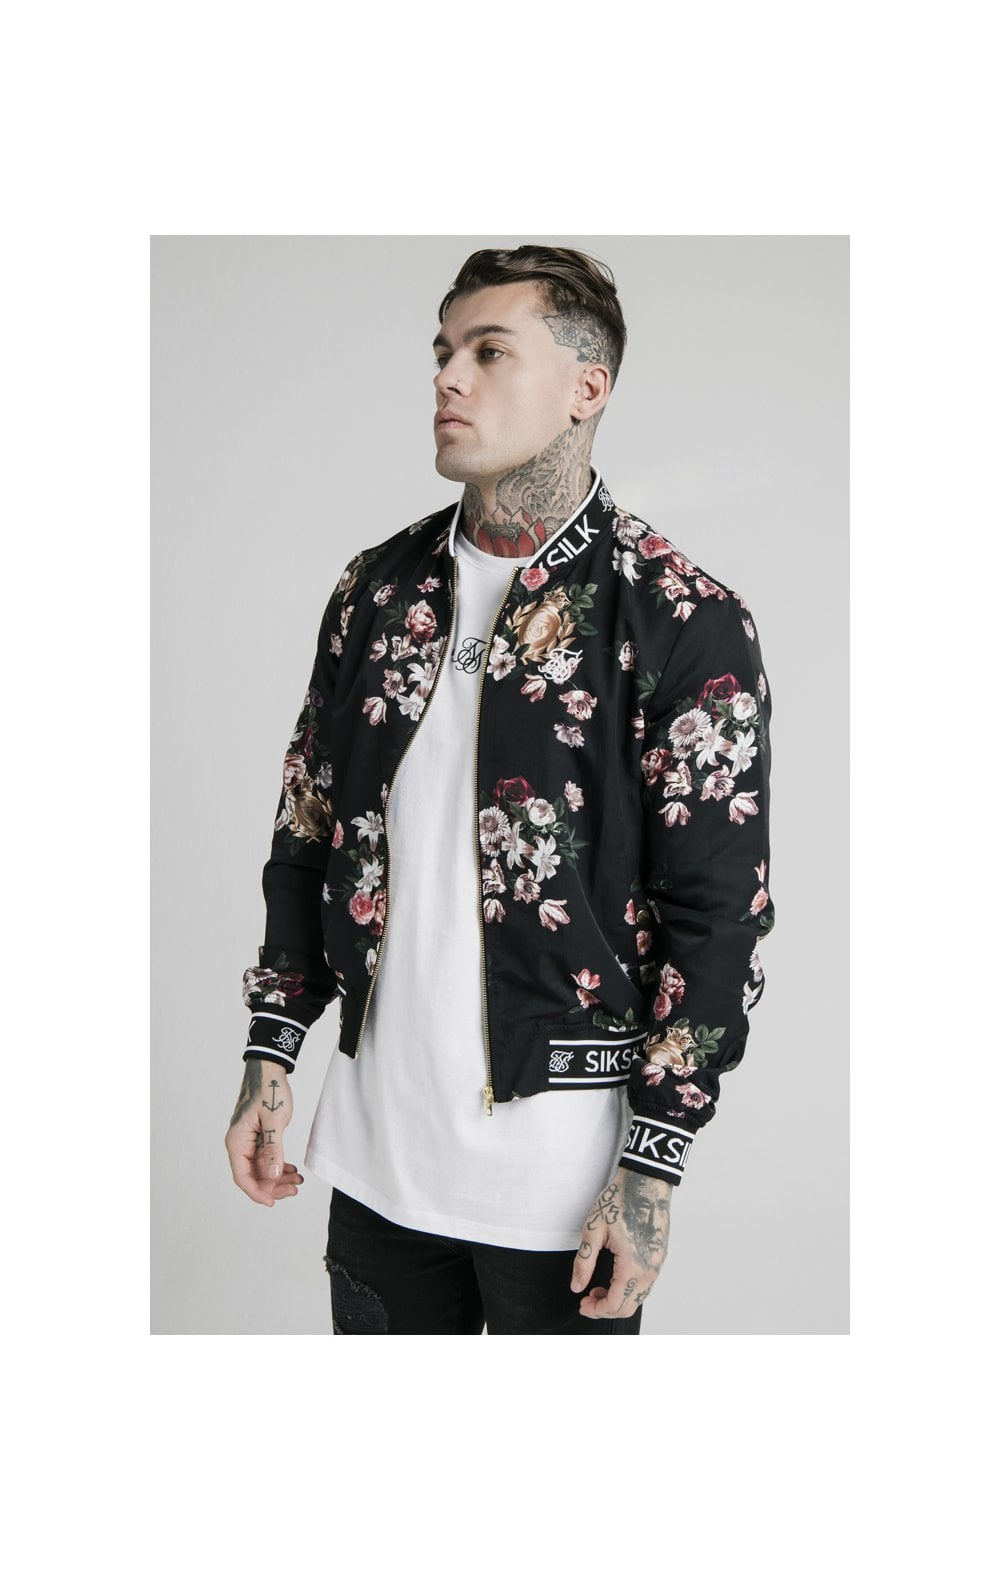 Load image into Gallery viewer, SikSilk Prestige Floral Bomber - Black